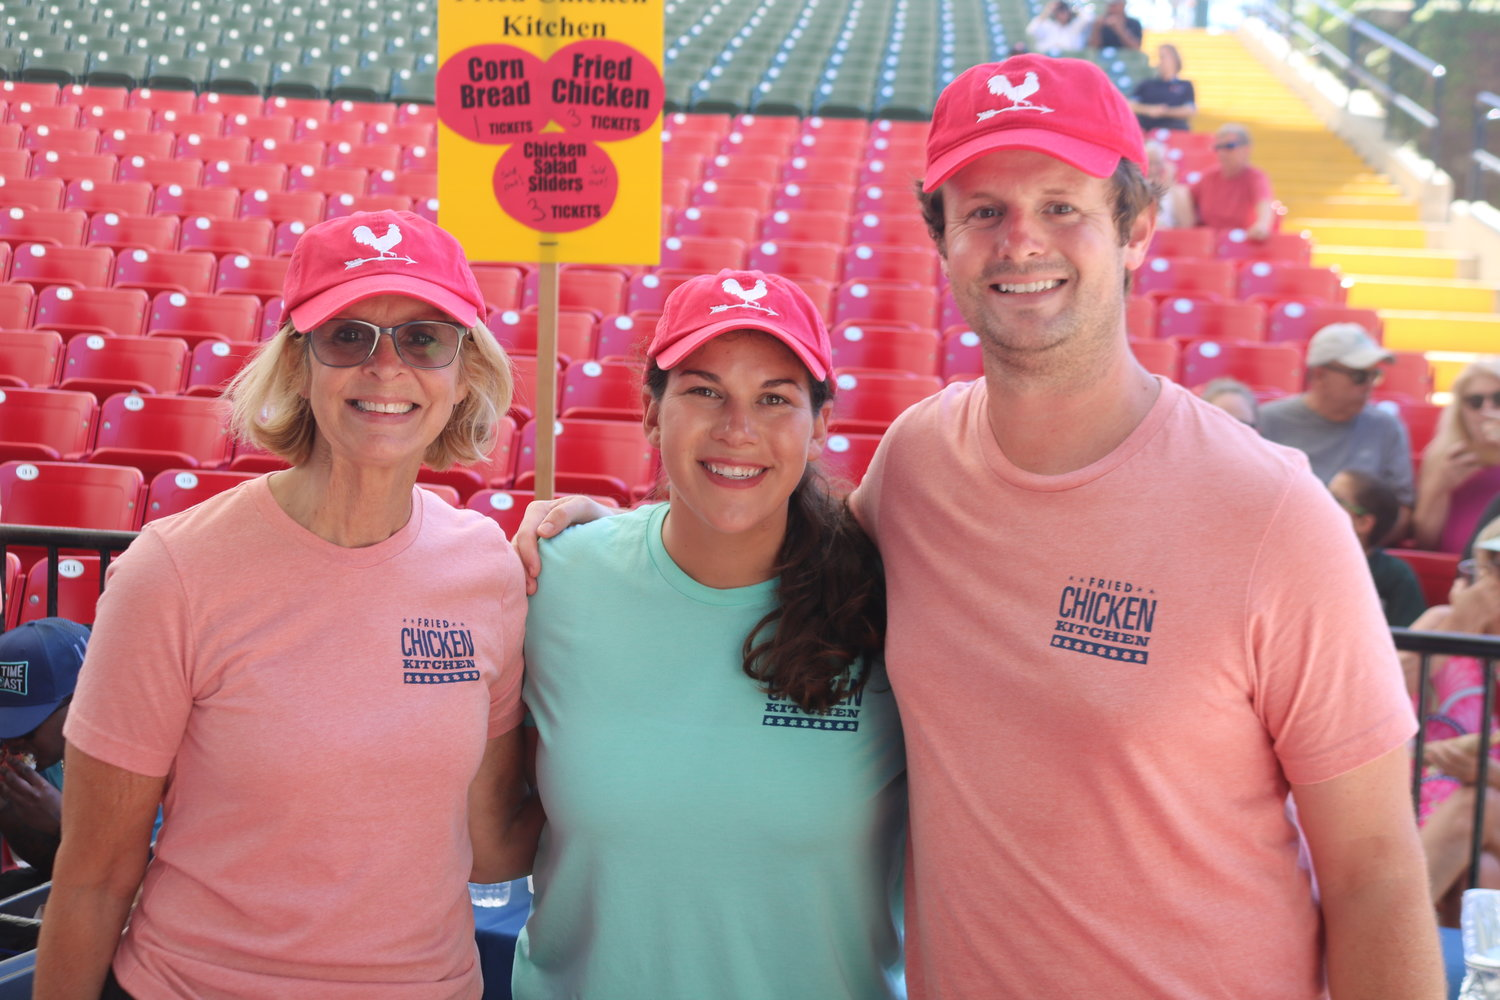 Cathy Smith, Spencer Upchurch and Christina Costuk of Fried Chicken Kitchen